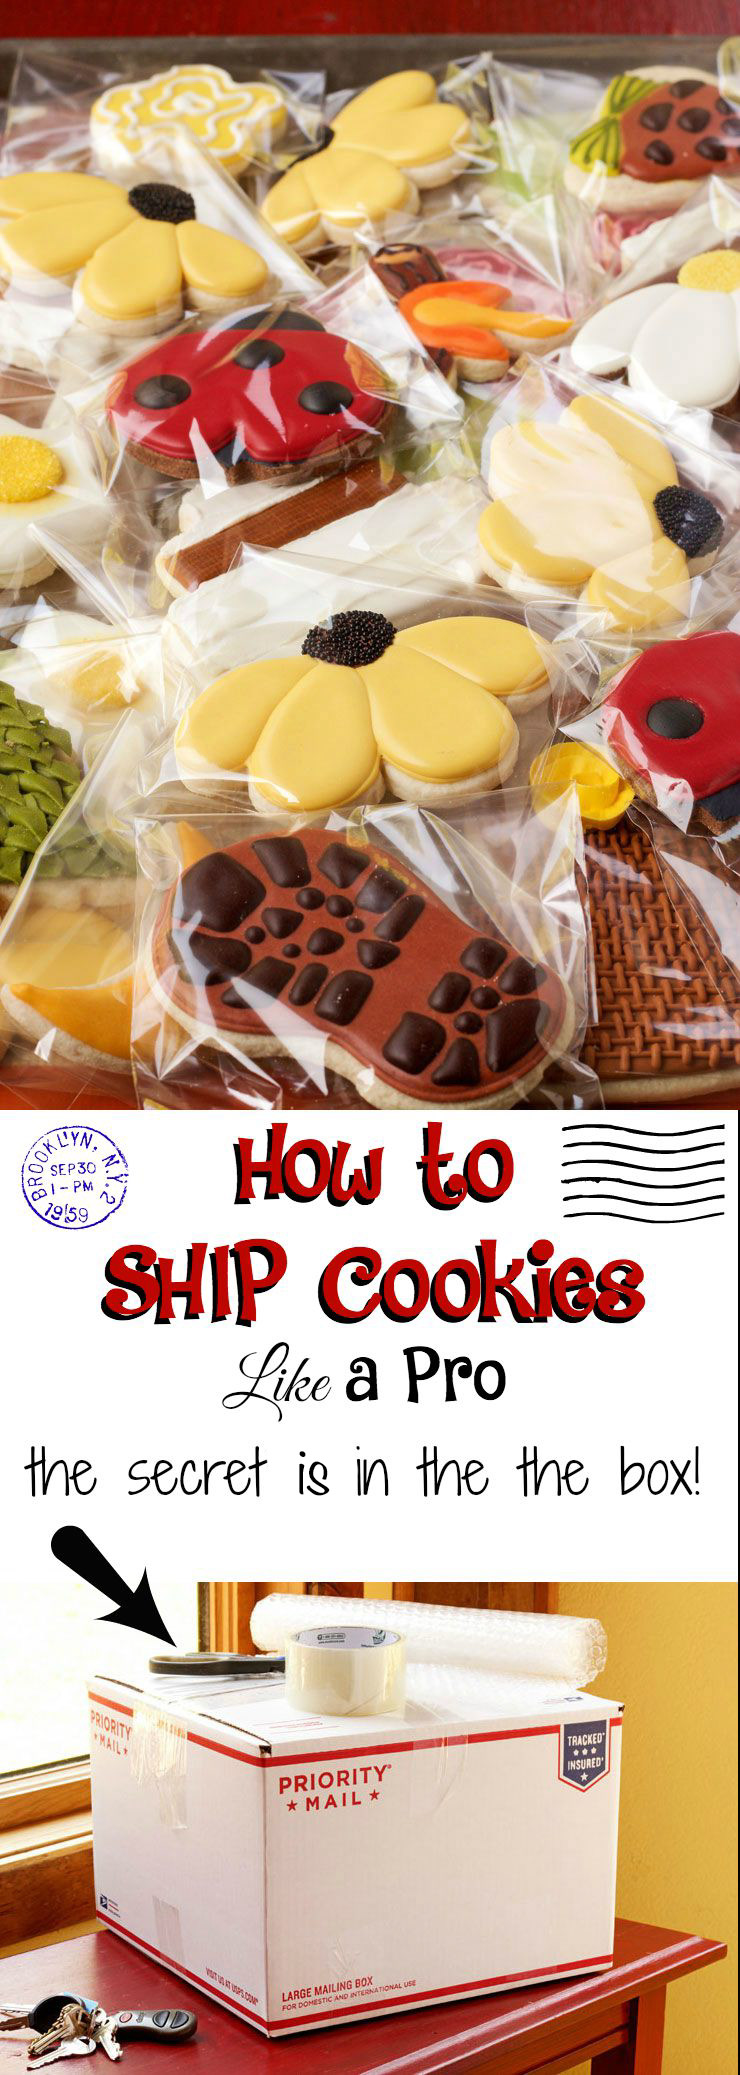 How to Ship Cookies Like a Pro with a How to Video | The Bearfoot Baker